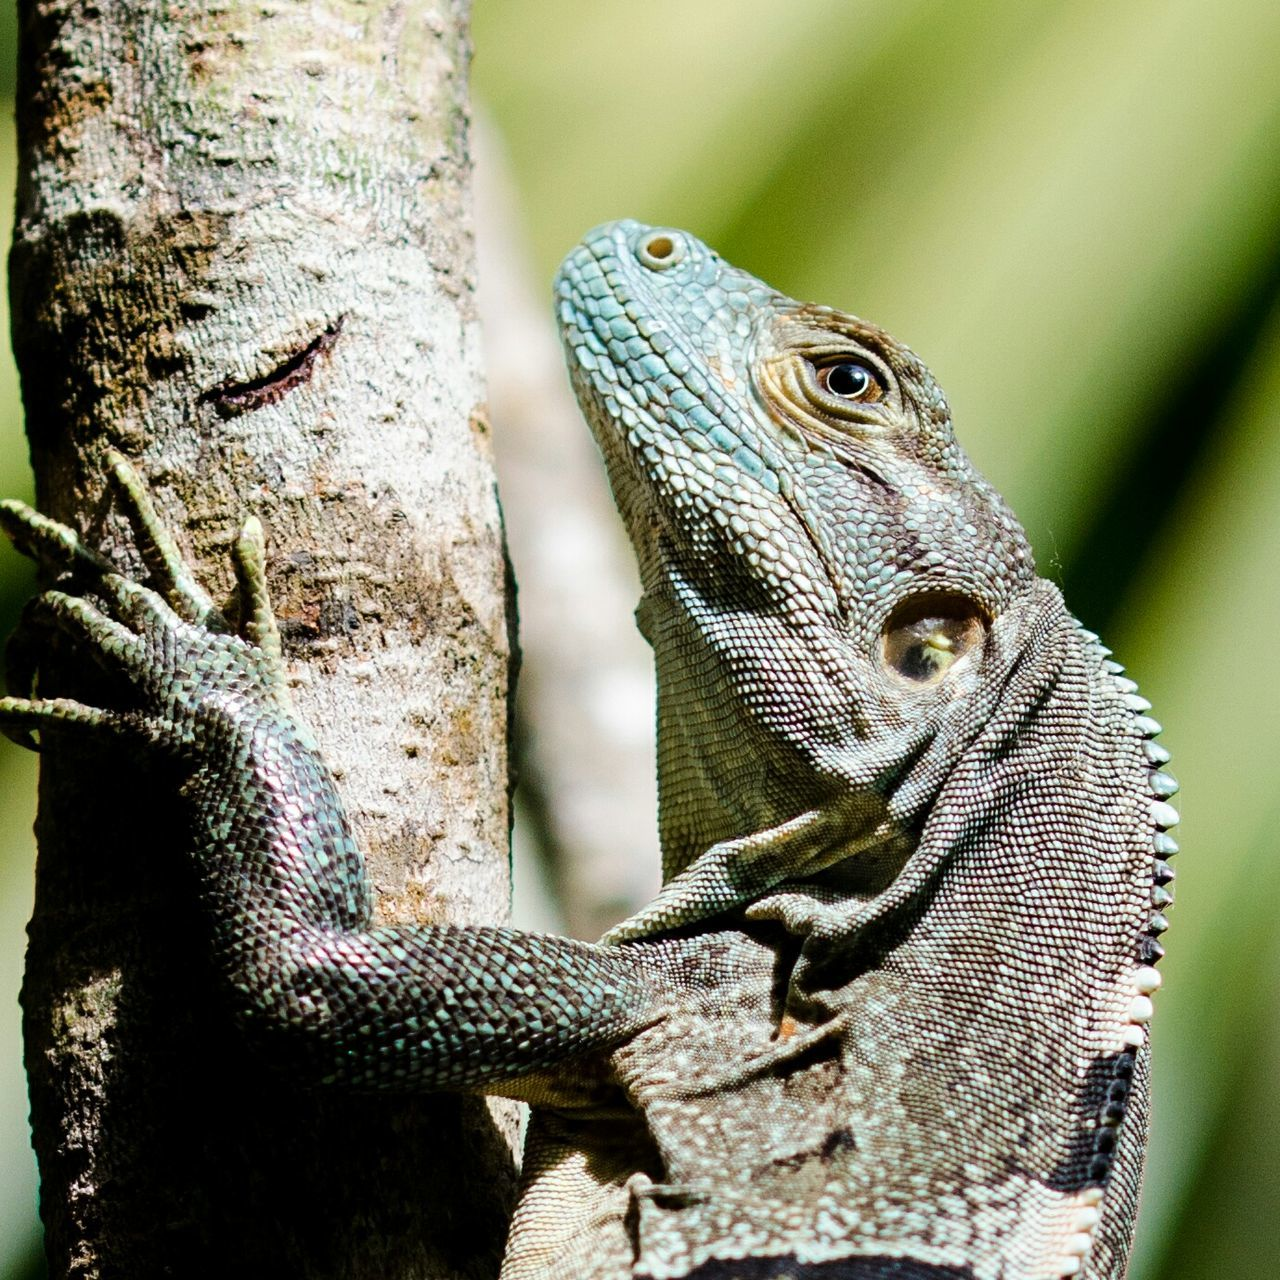 Iguana Iguana Love Iguana Photo Iguana In A Tree Animal Wildlife Animals In The Wild Reptile Close-up No People Wildlife_shots Nature_collection Nature Photography One Animal Nature Costa Rica Wildlife & Nature Wildlife Photography Wildlife_perfection